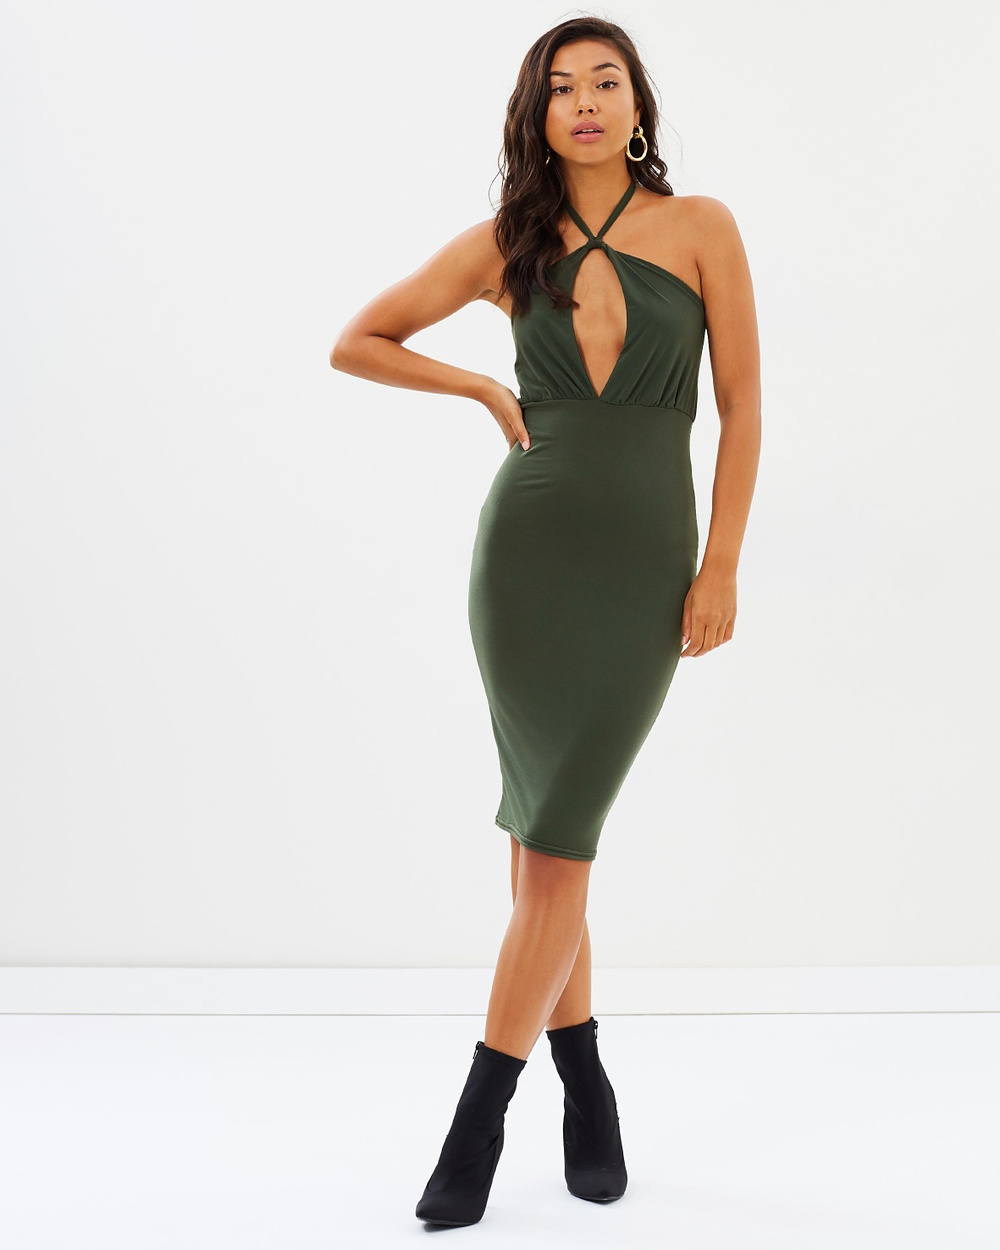 Missguided Slinky Tie Neck Twist Keyhole Midi Dress Bodycon Dresses Khaki Slinky Tie-Neck Twist Keyhole Midi Dress